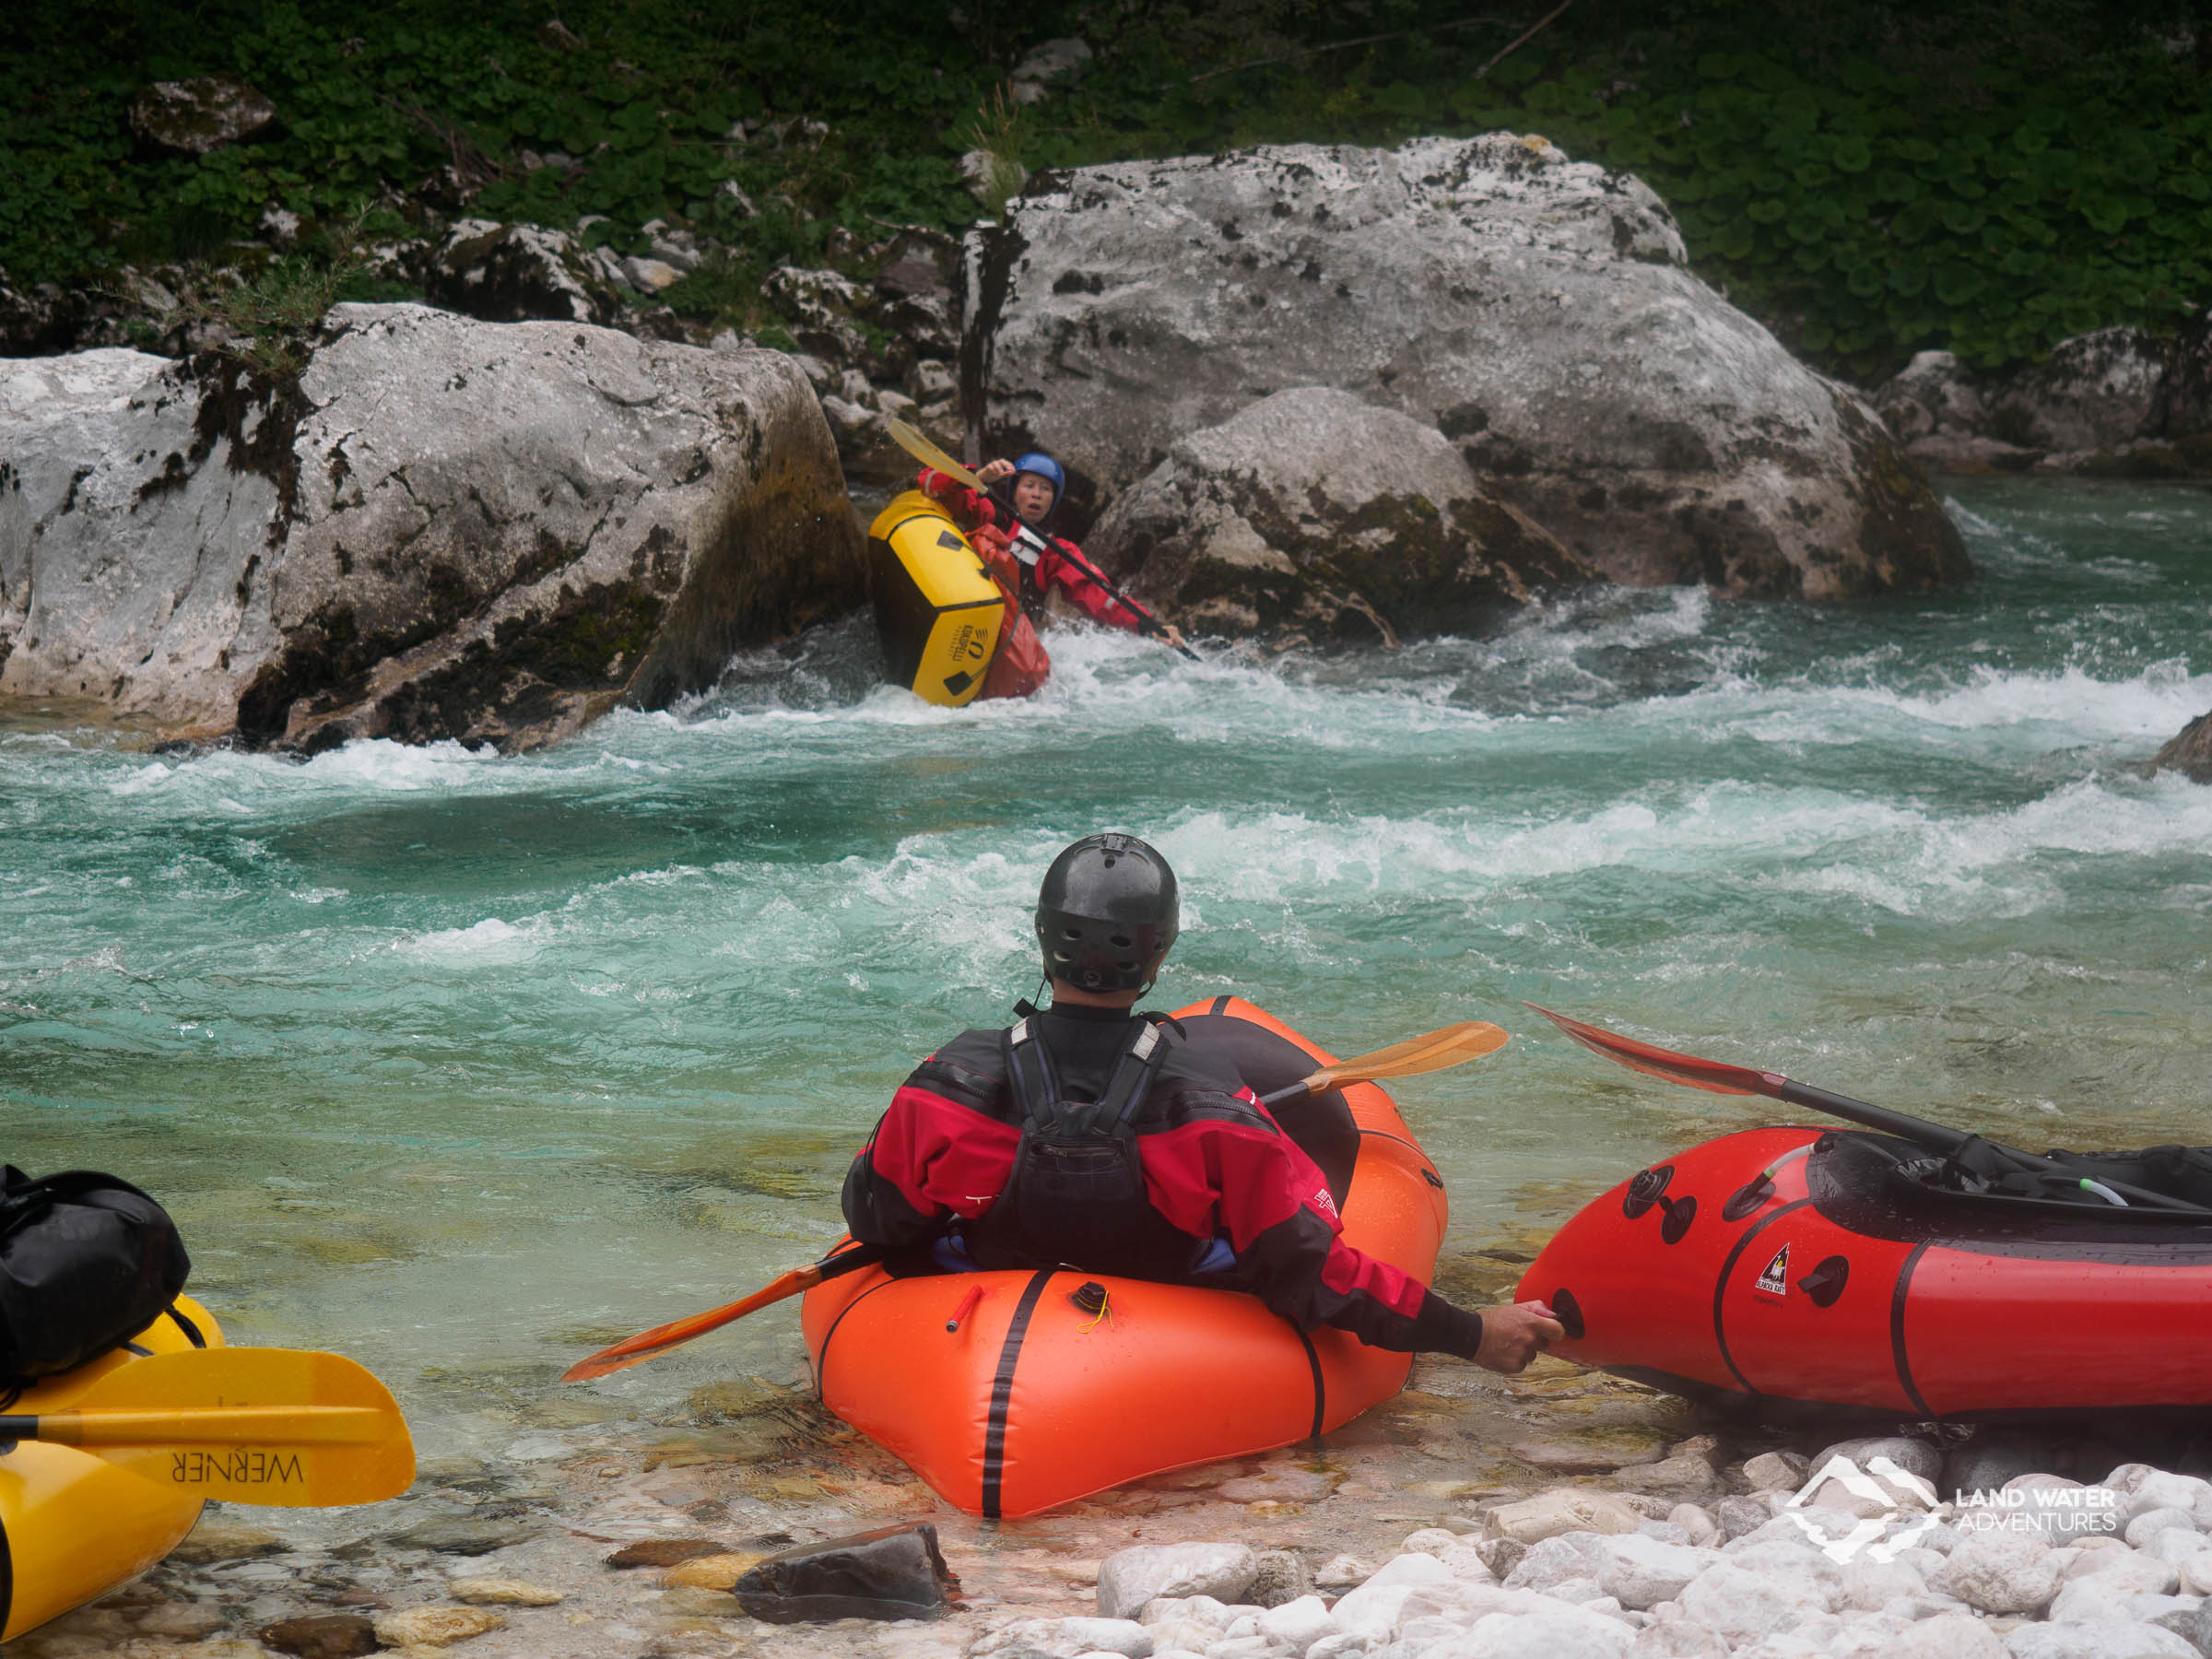 Pastorentöter Soca © Land Water Adventures